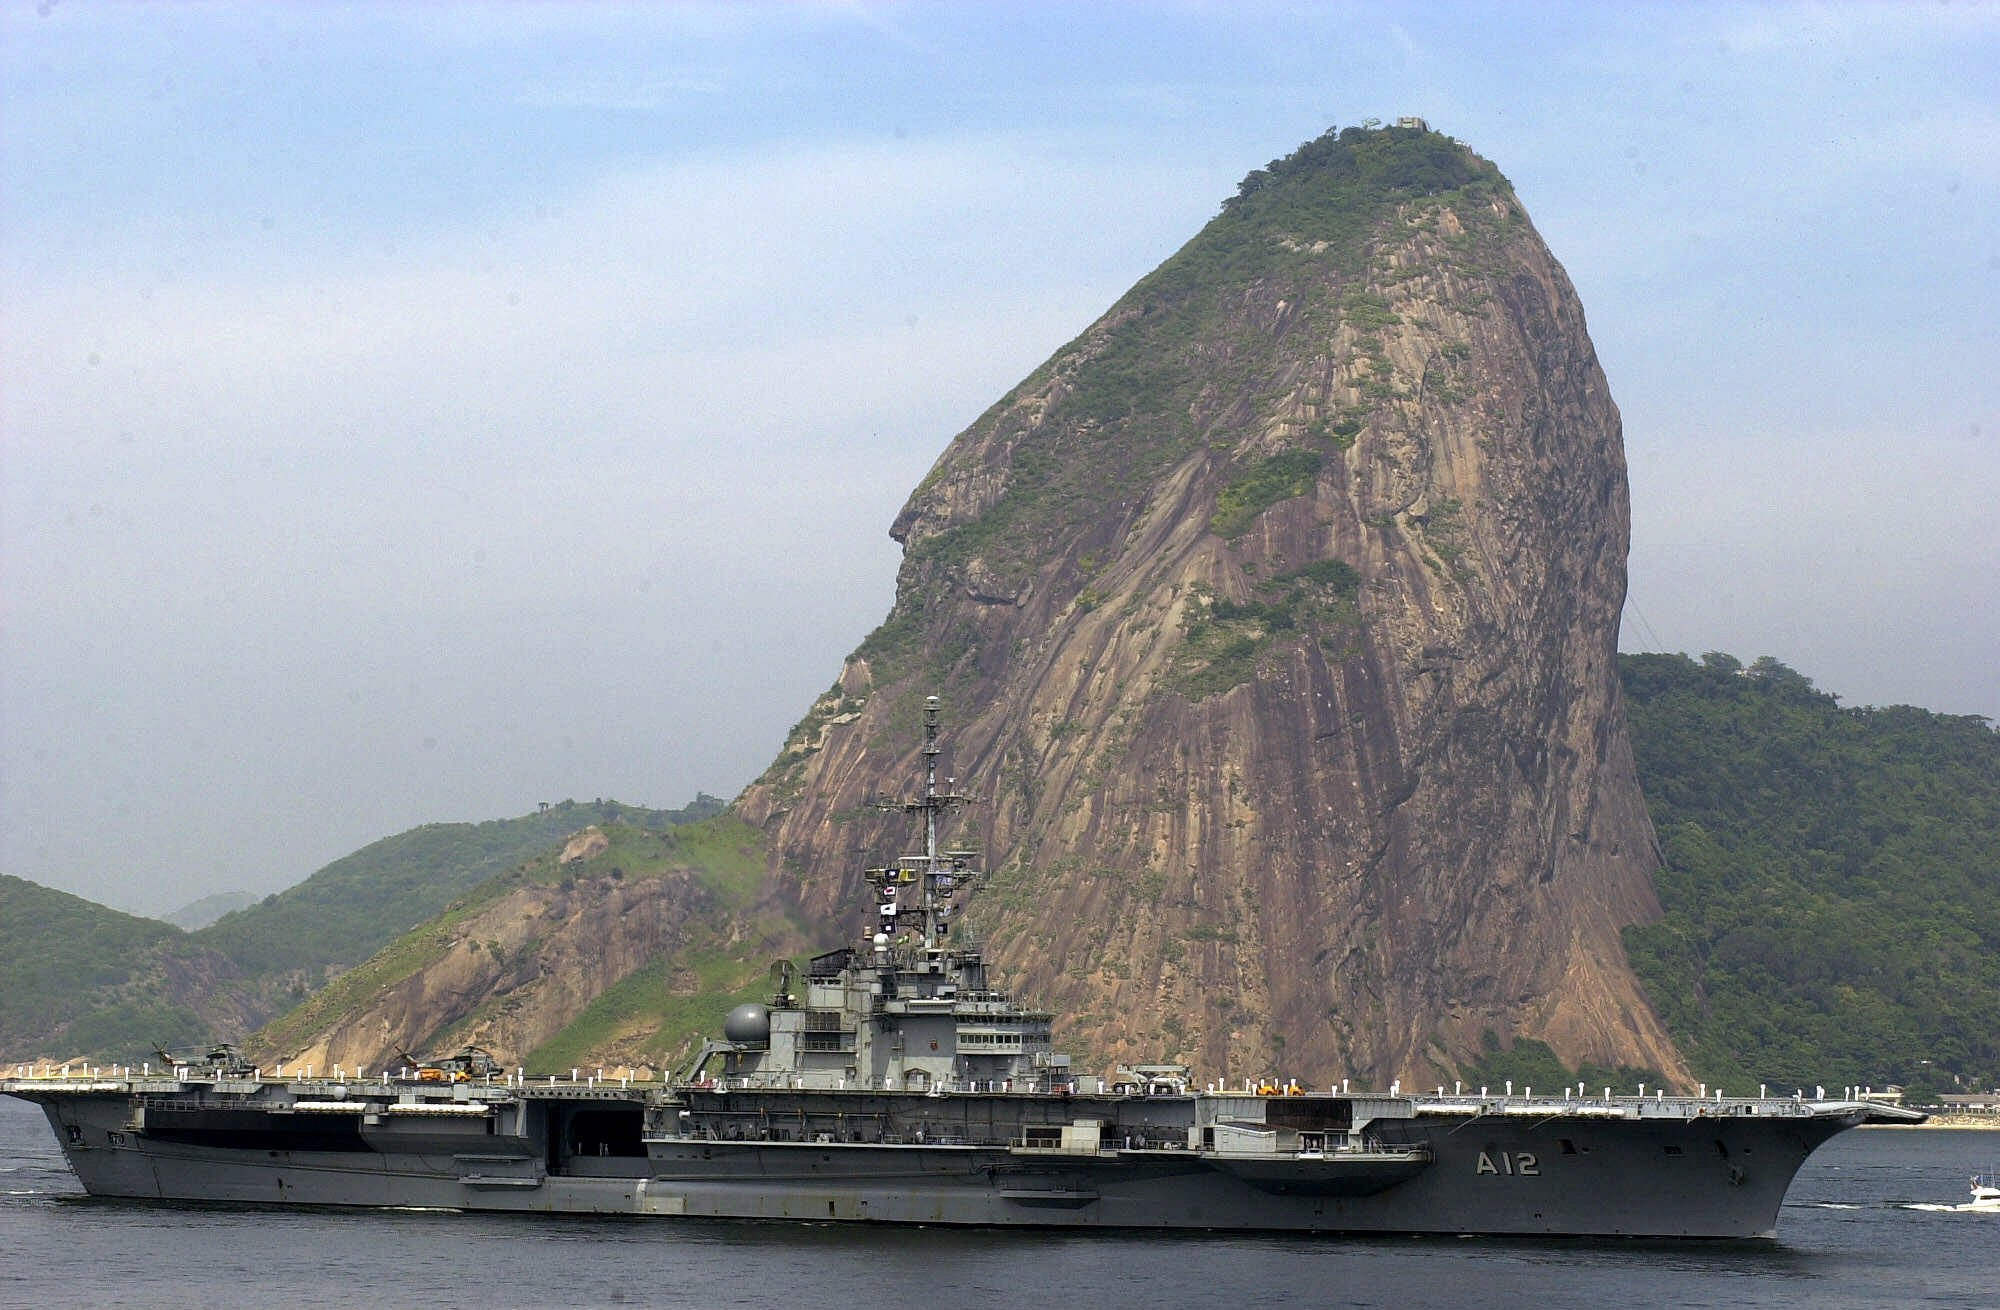 Brazilian aircraft carrier Sao Paulo passes the famous Sugarloaf Mountain upon arrival in Rio de Janeiro, Brazil, Feb. 17, 2001